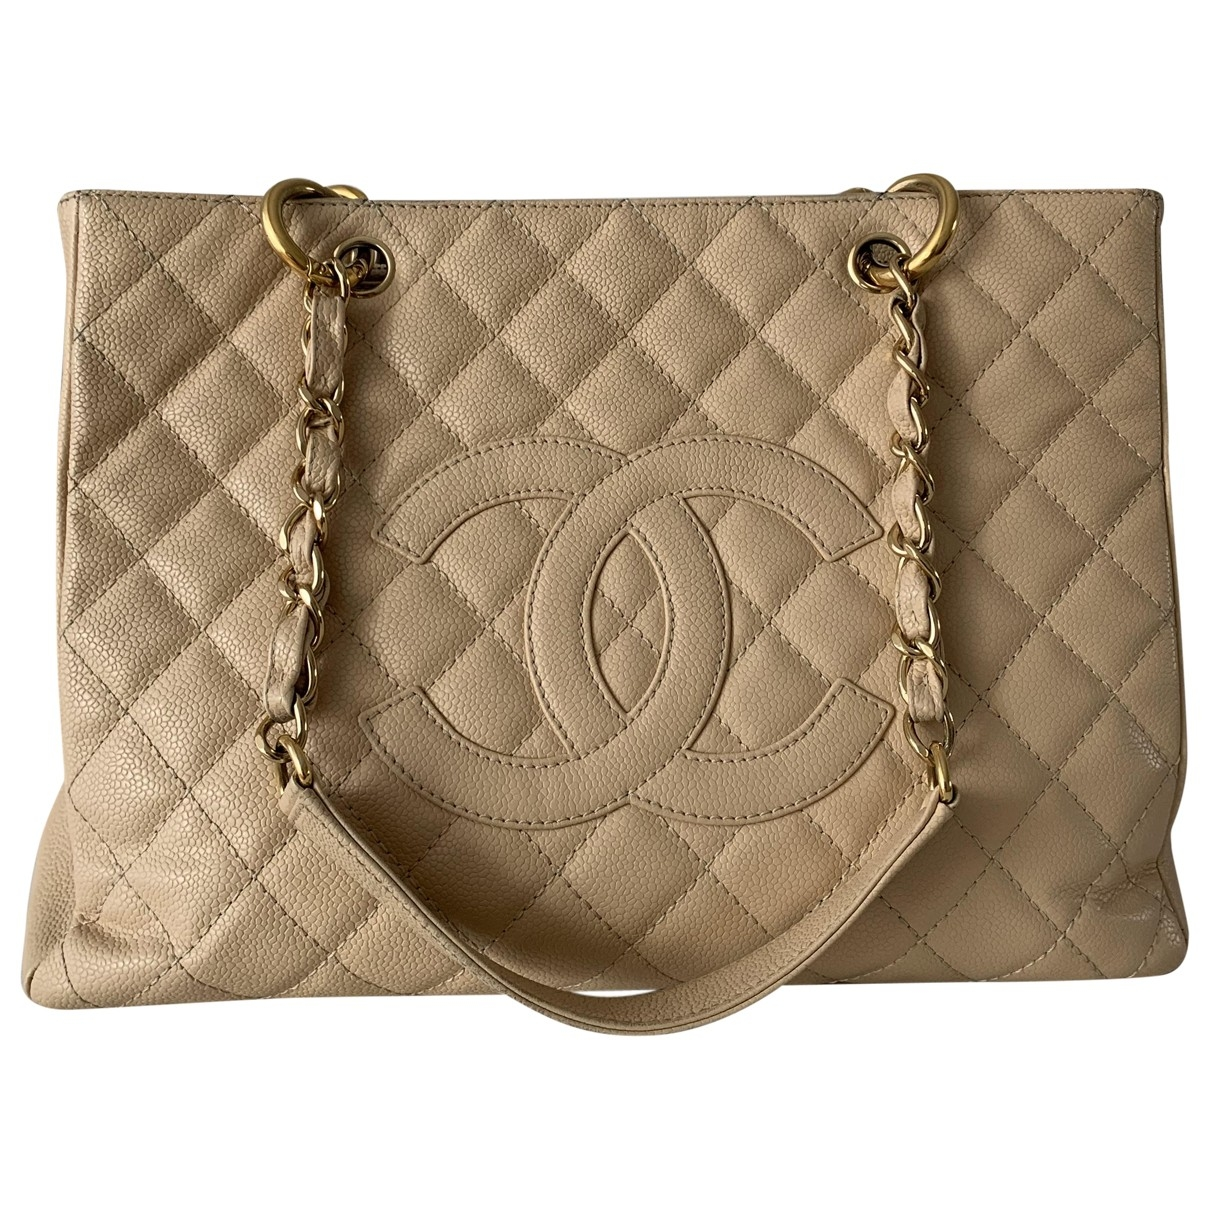 Chanel Grand shopping Beige Leather handbag for Women \N